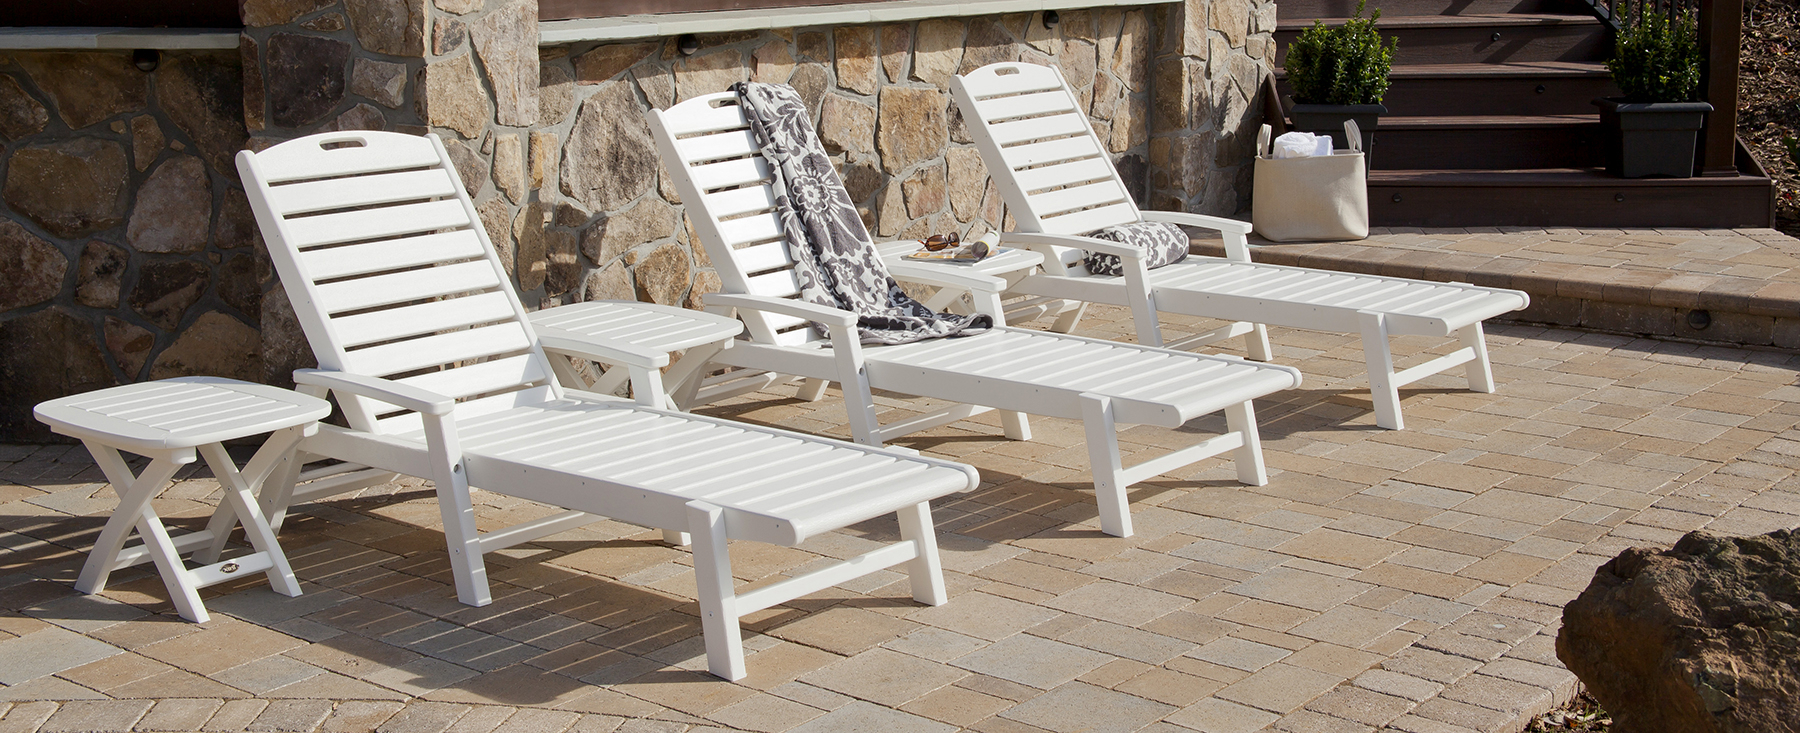 Outdoor Adjustable Wood Chaise Lounges Pertaining To Well Known The Shopper's Guide To Buying An Outdoor Chaise Lounge (View 14 of 25)